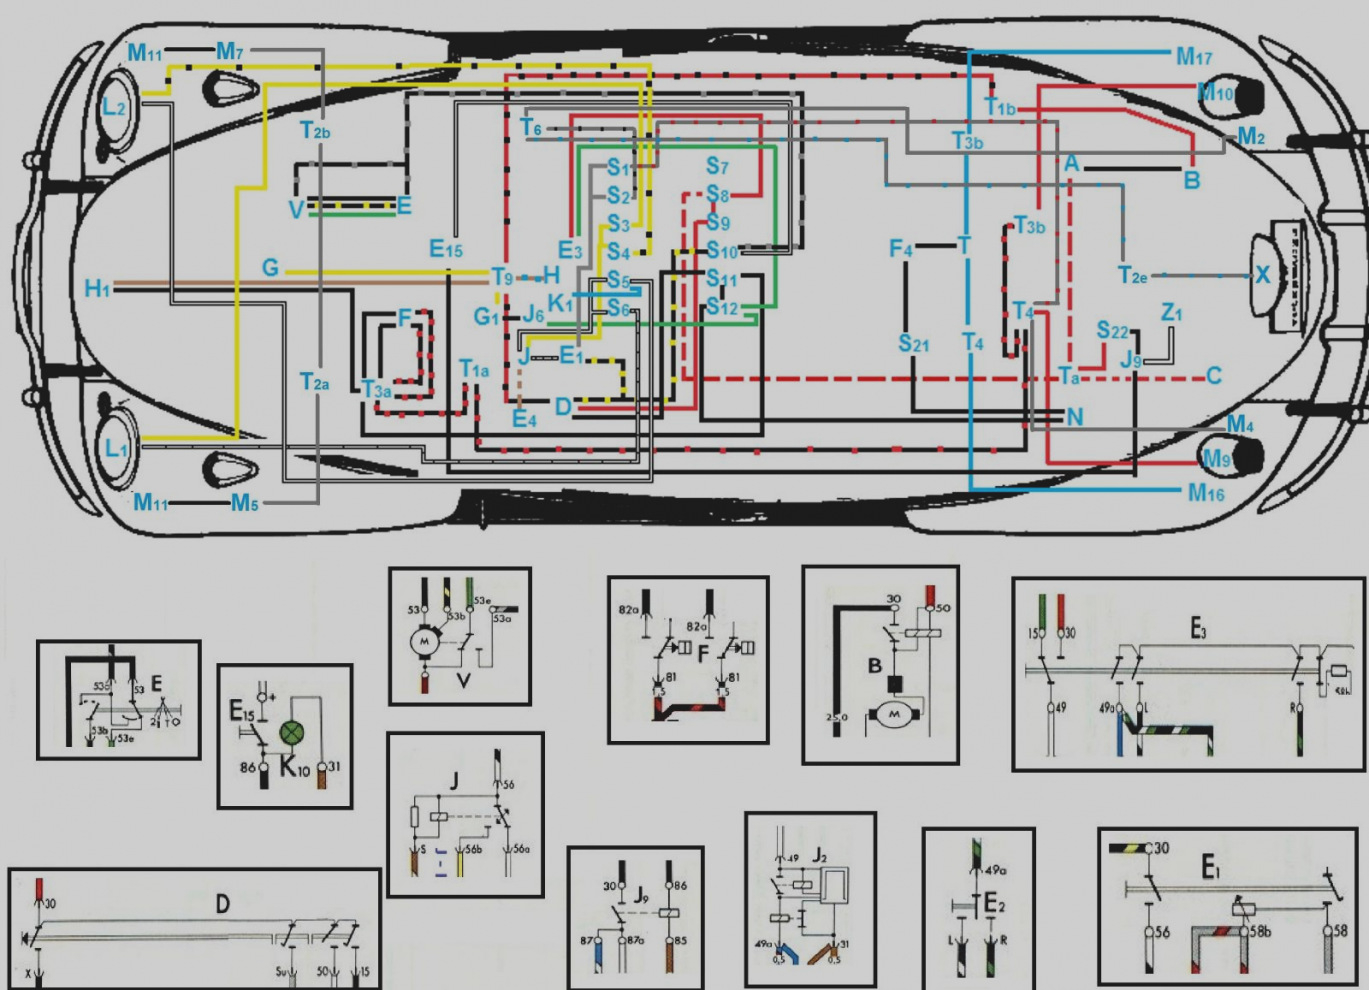 hight resolution of 2001 vw beetle wiring wiring diagram schema 2001 vw beetle ac wiring diagram 2001 volkswagen beetle